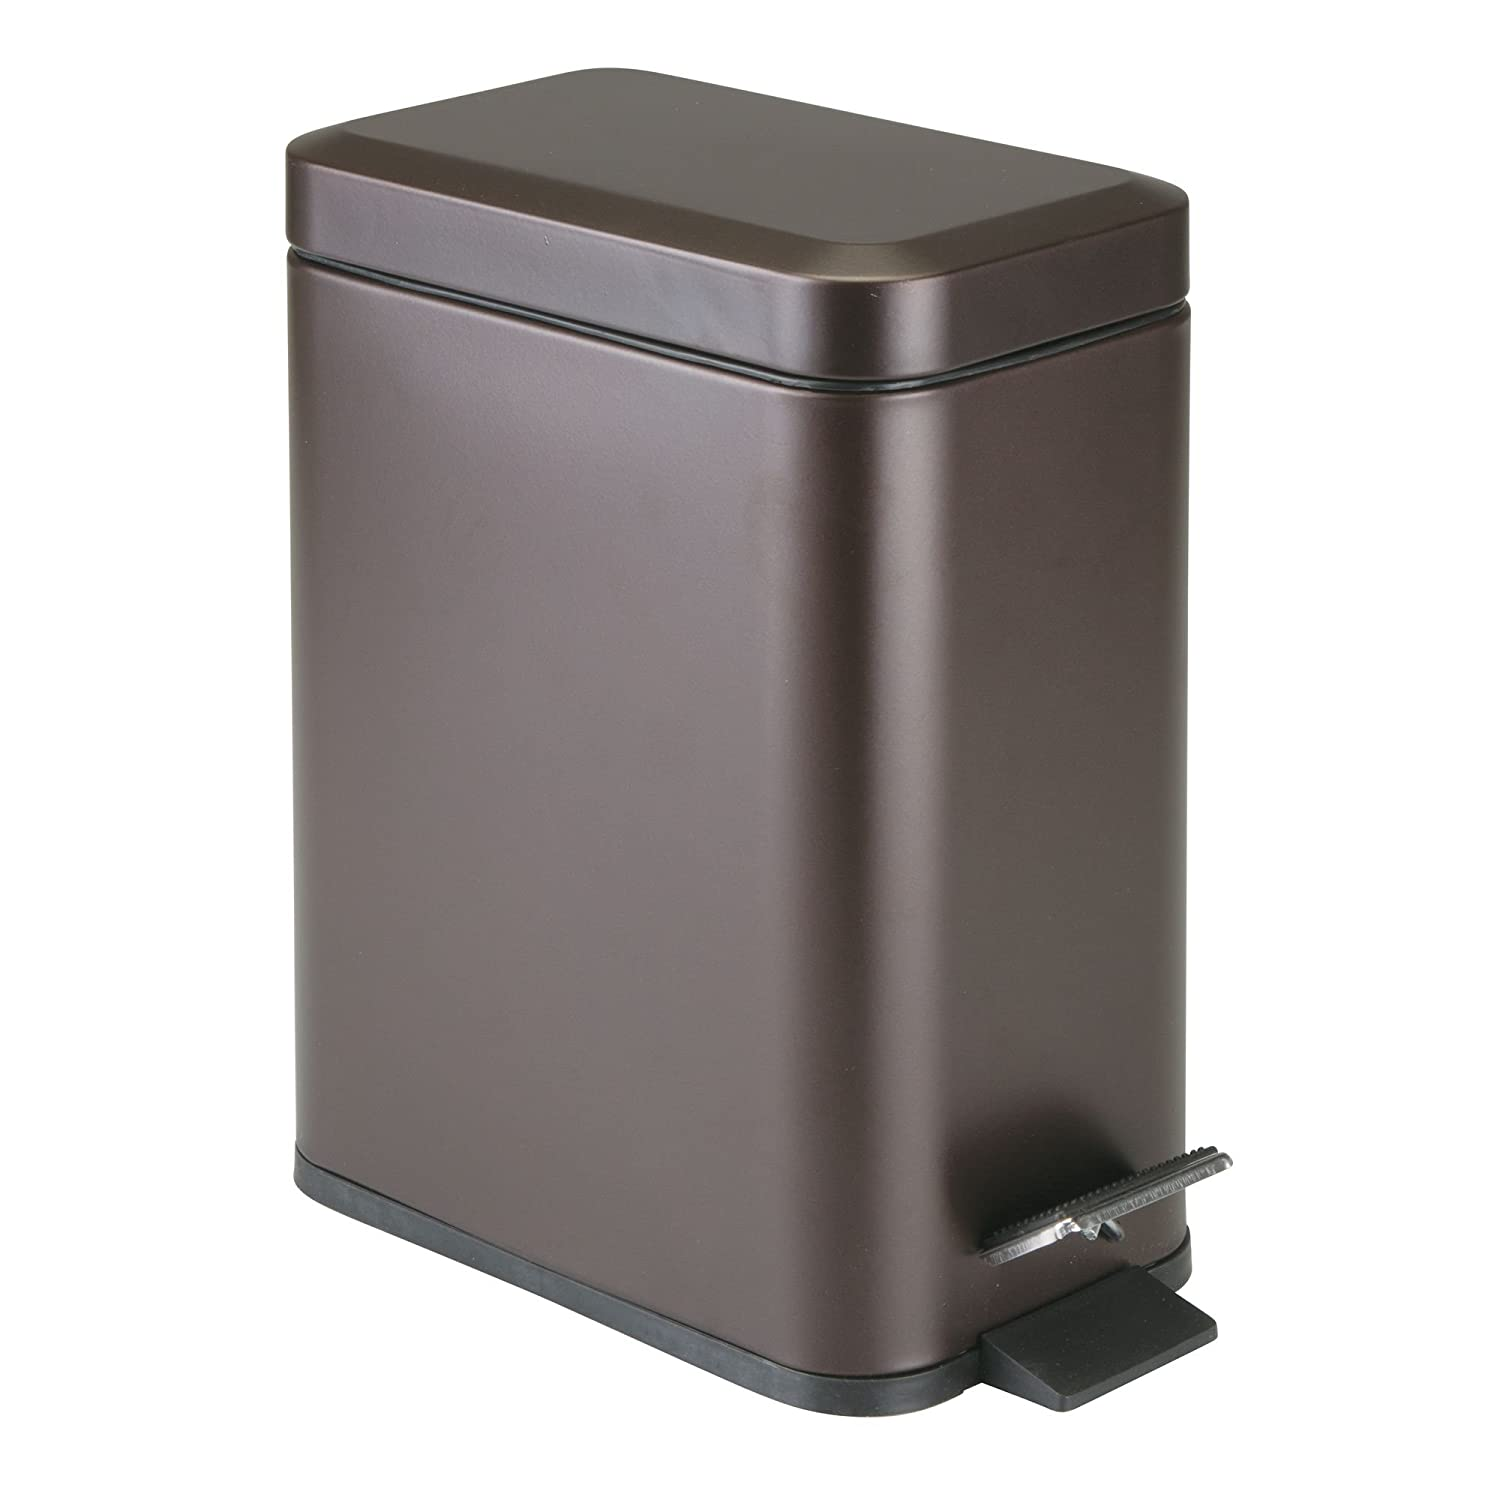 mDesign 5 Liter Rectangular Small Steel Step Trash Can Wastebasket, Garbage Container Bin for Bathroom, Powder Room, Bedroom, Kitchen, Craft Room, Office - Removable Liner Bucket - Bronze